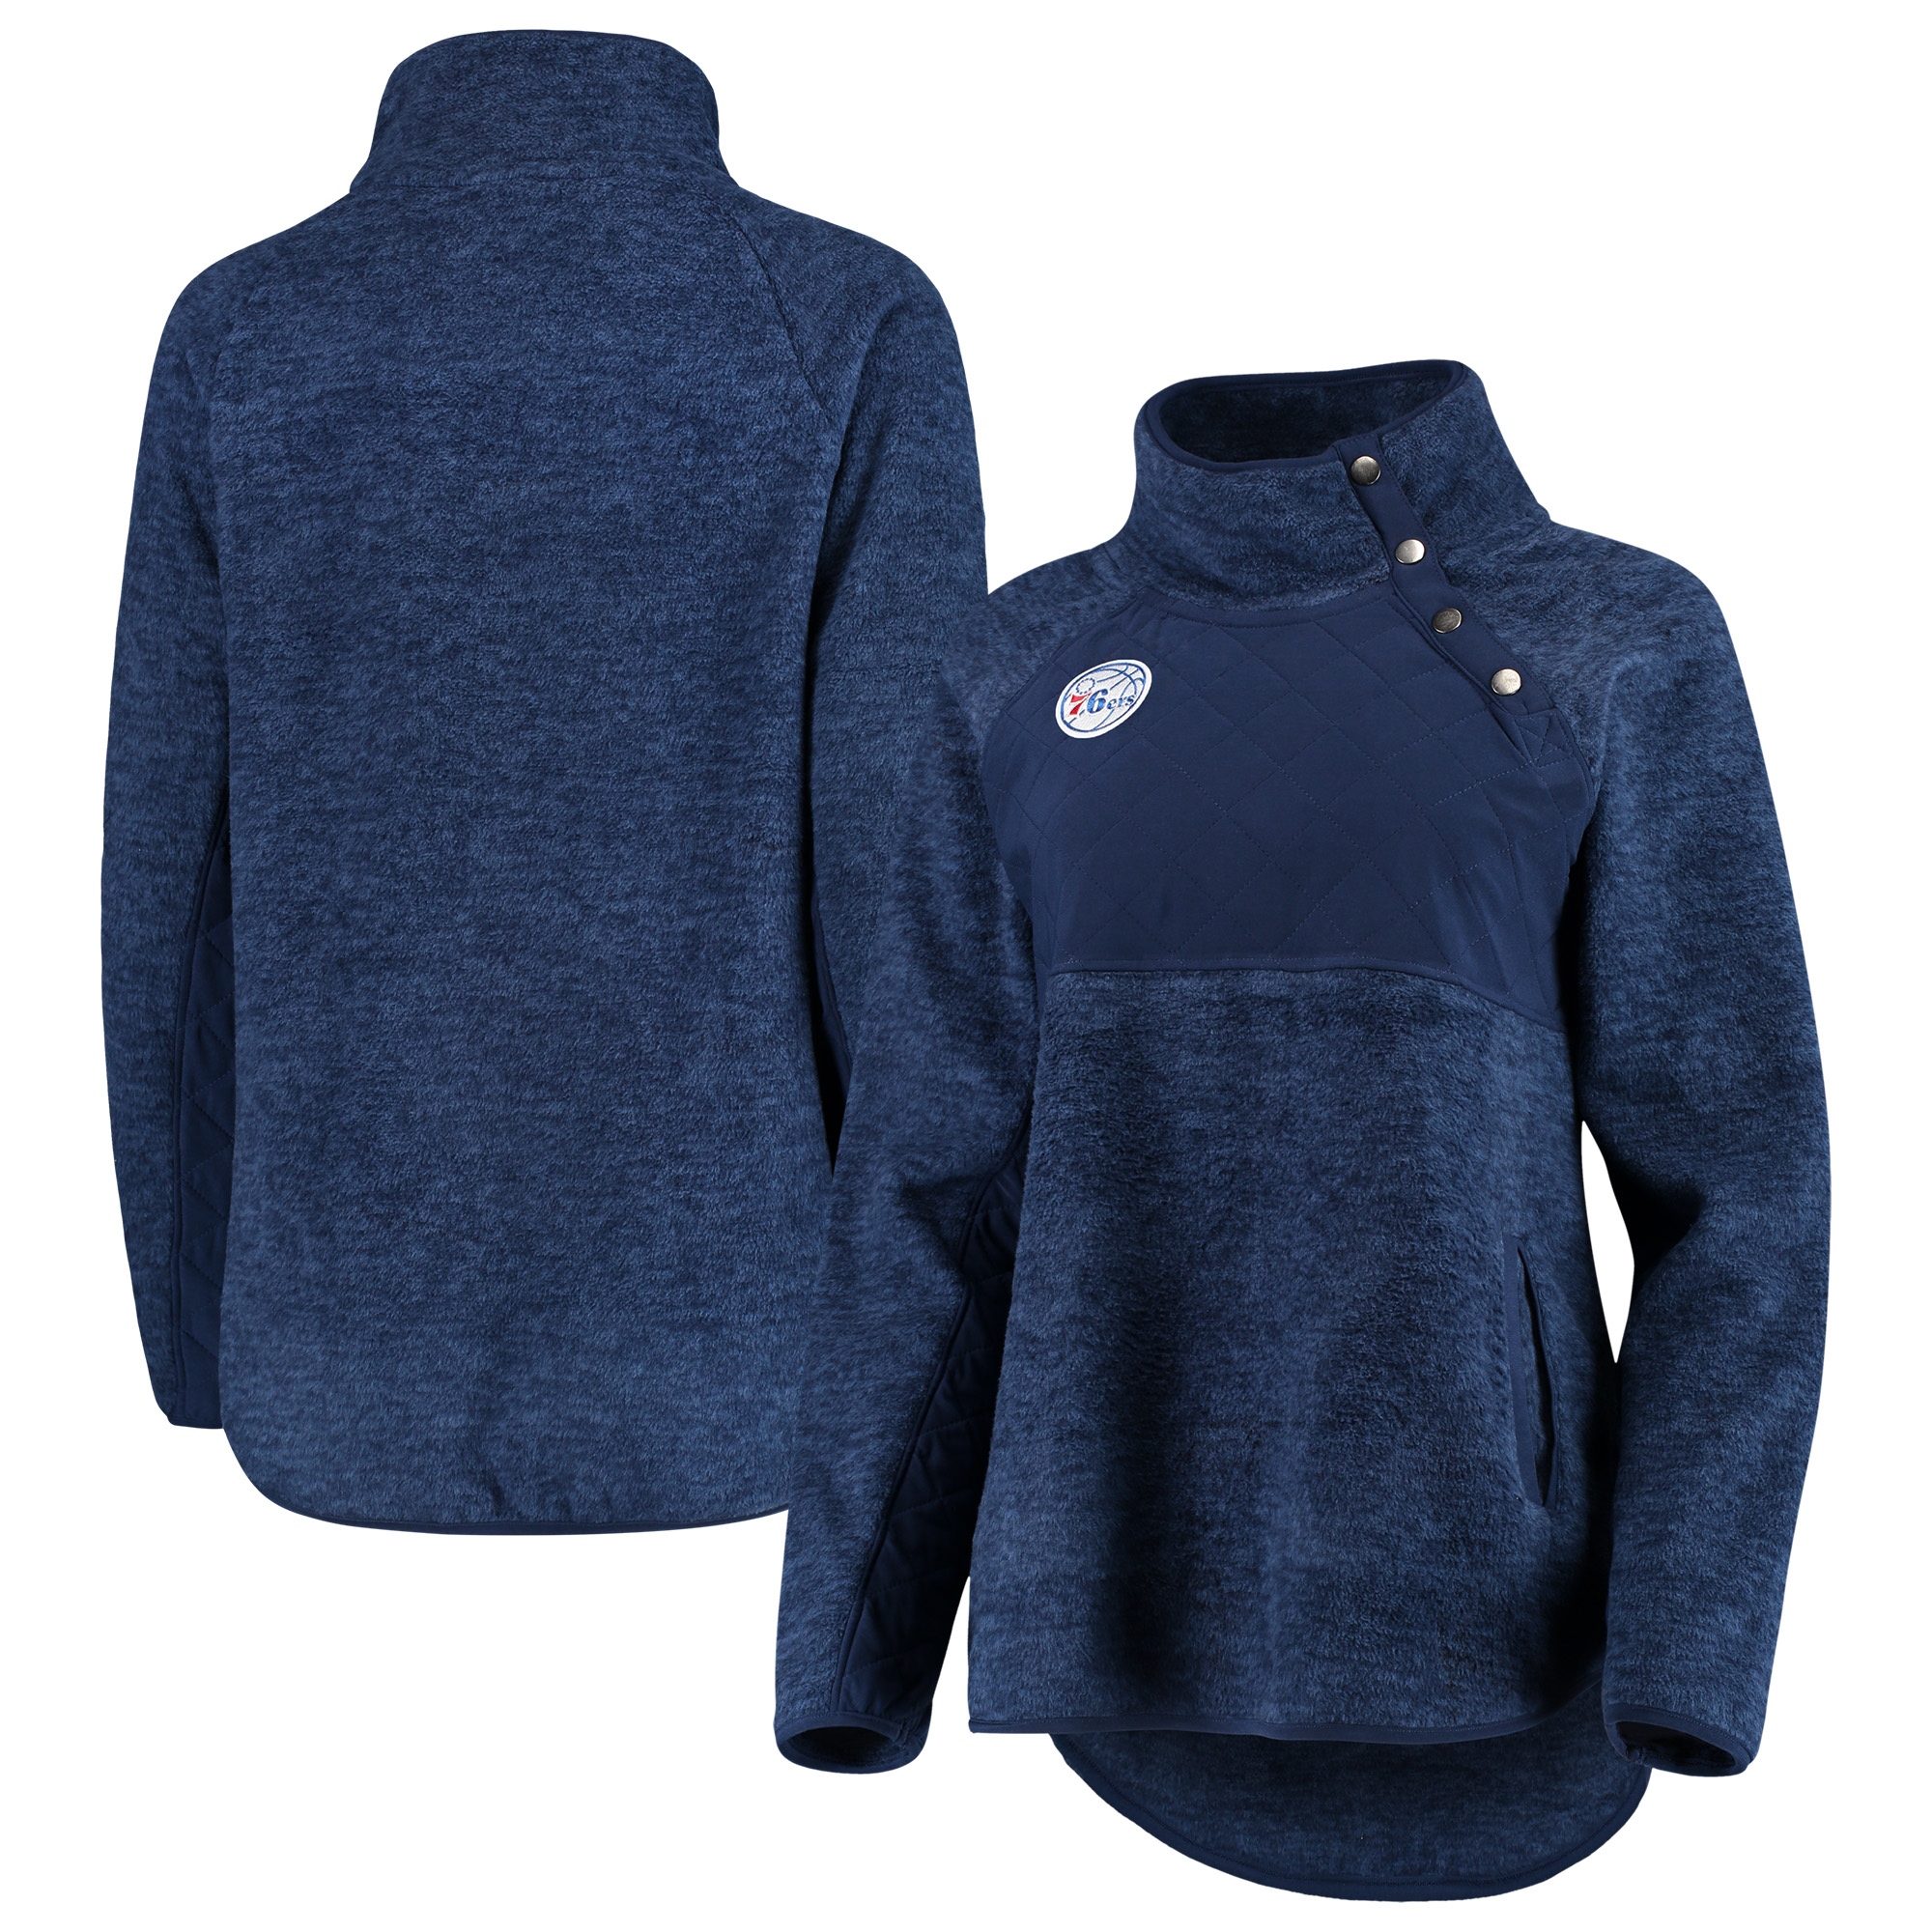 Philadelphia 76ers Women's Sidenote Quilted Snap-Up Pullover Jacket - Navy